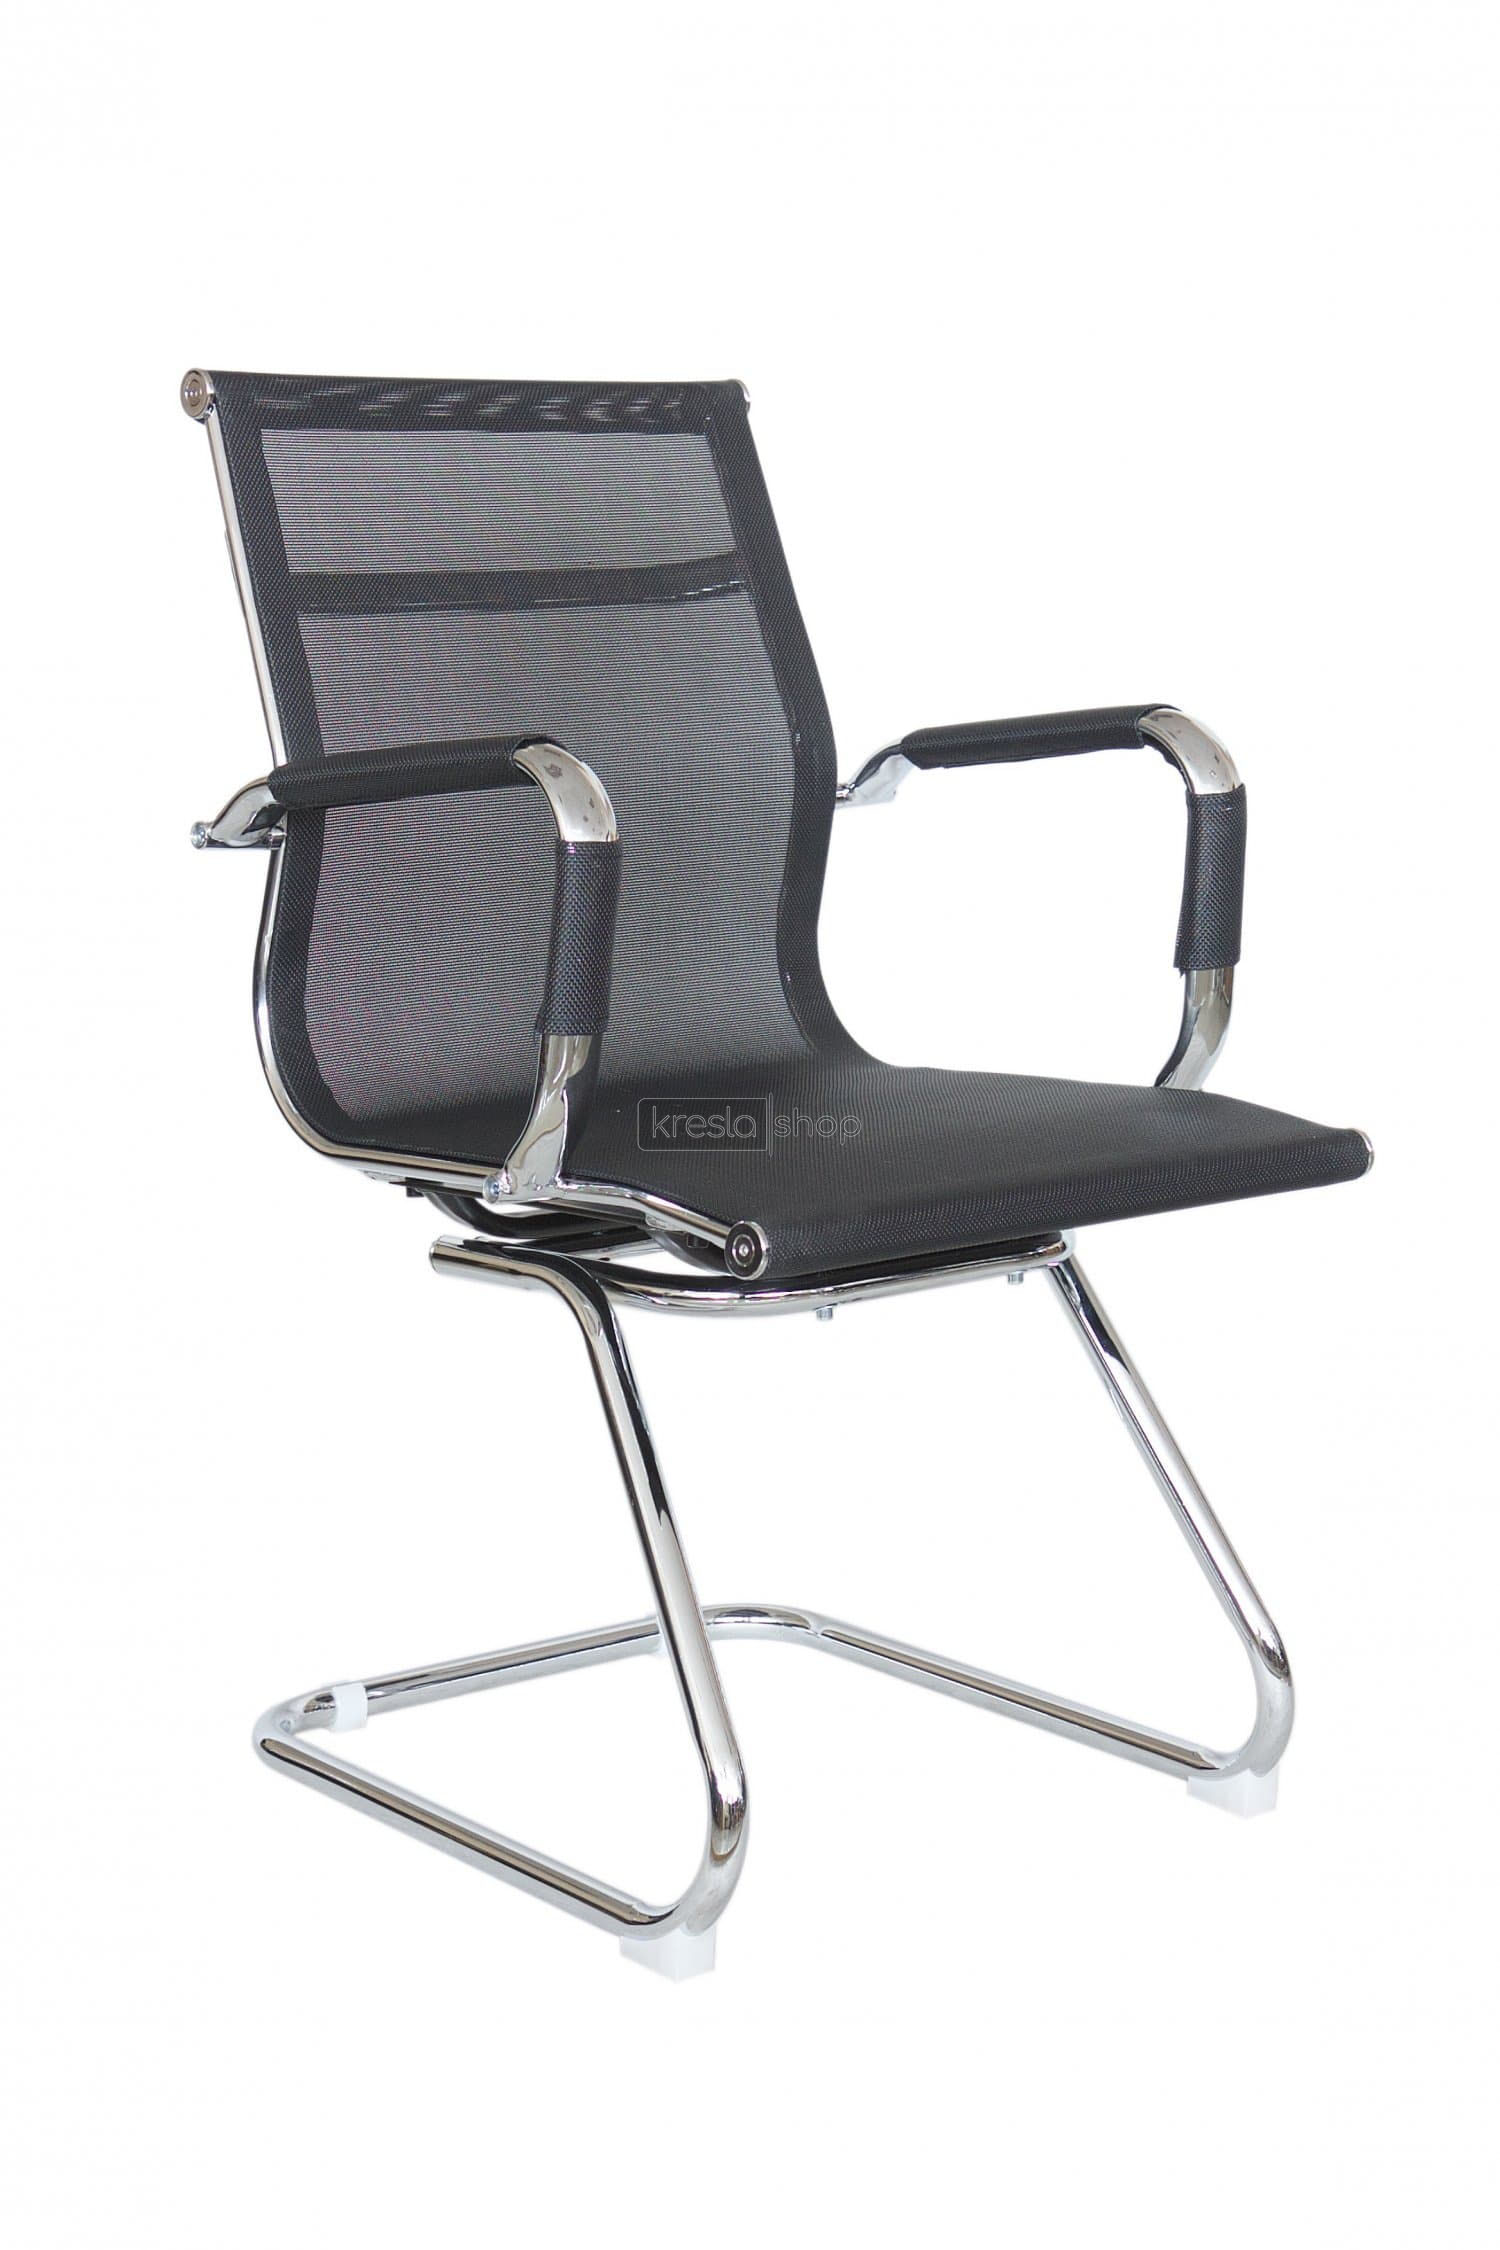 Конференц-кресло Riva Chair RCH 6001-3+Чёрная сетка